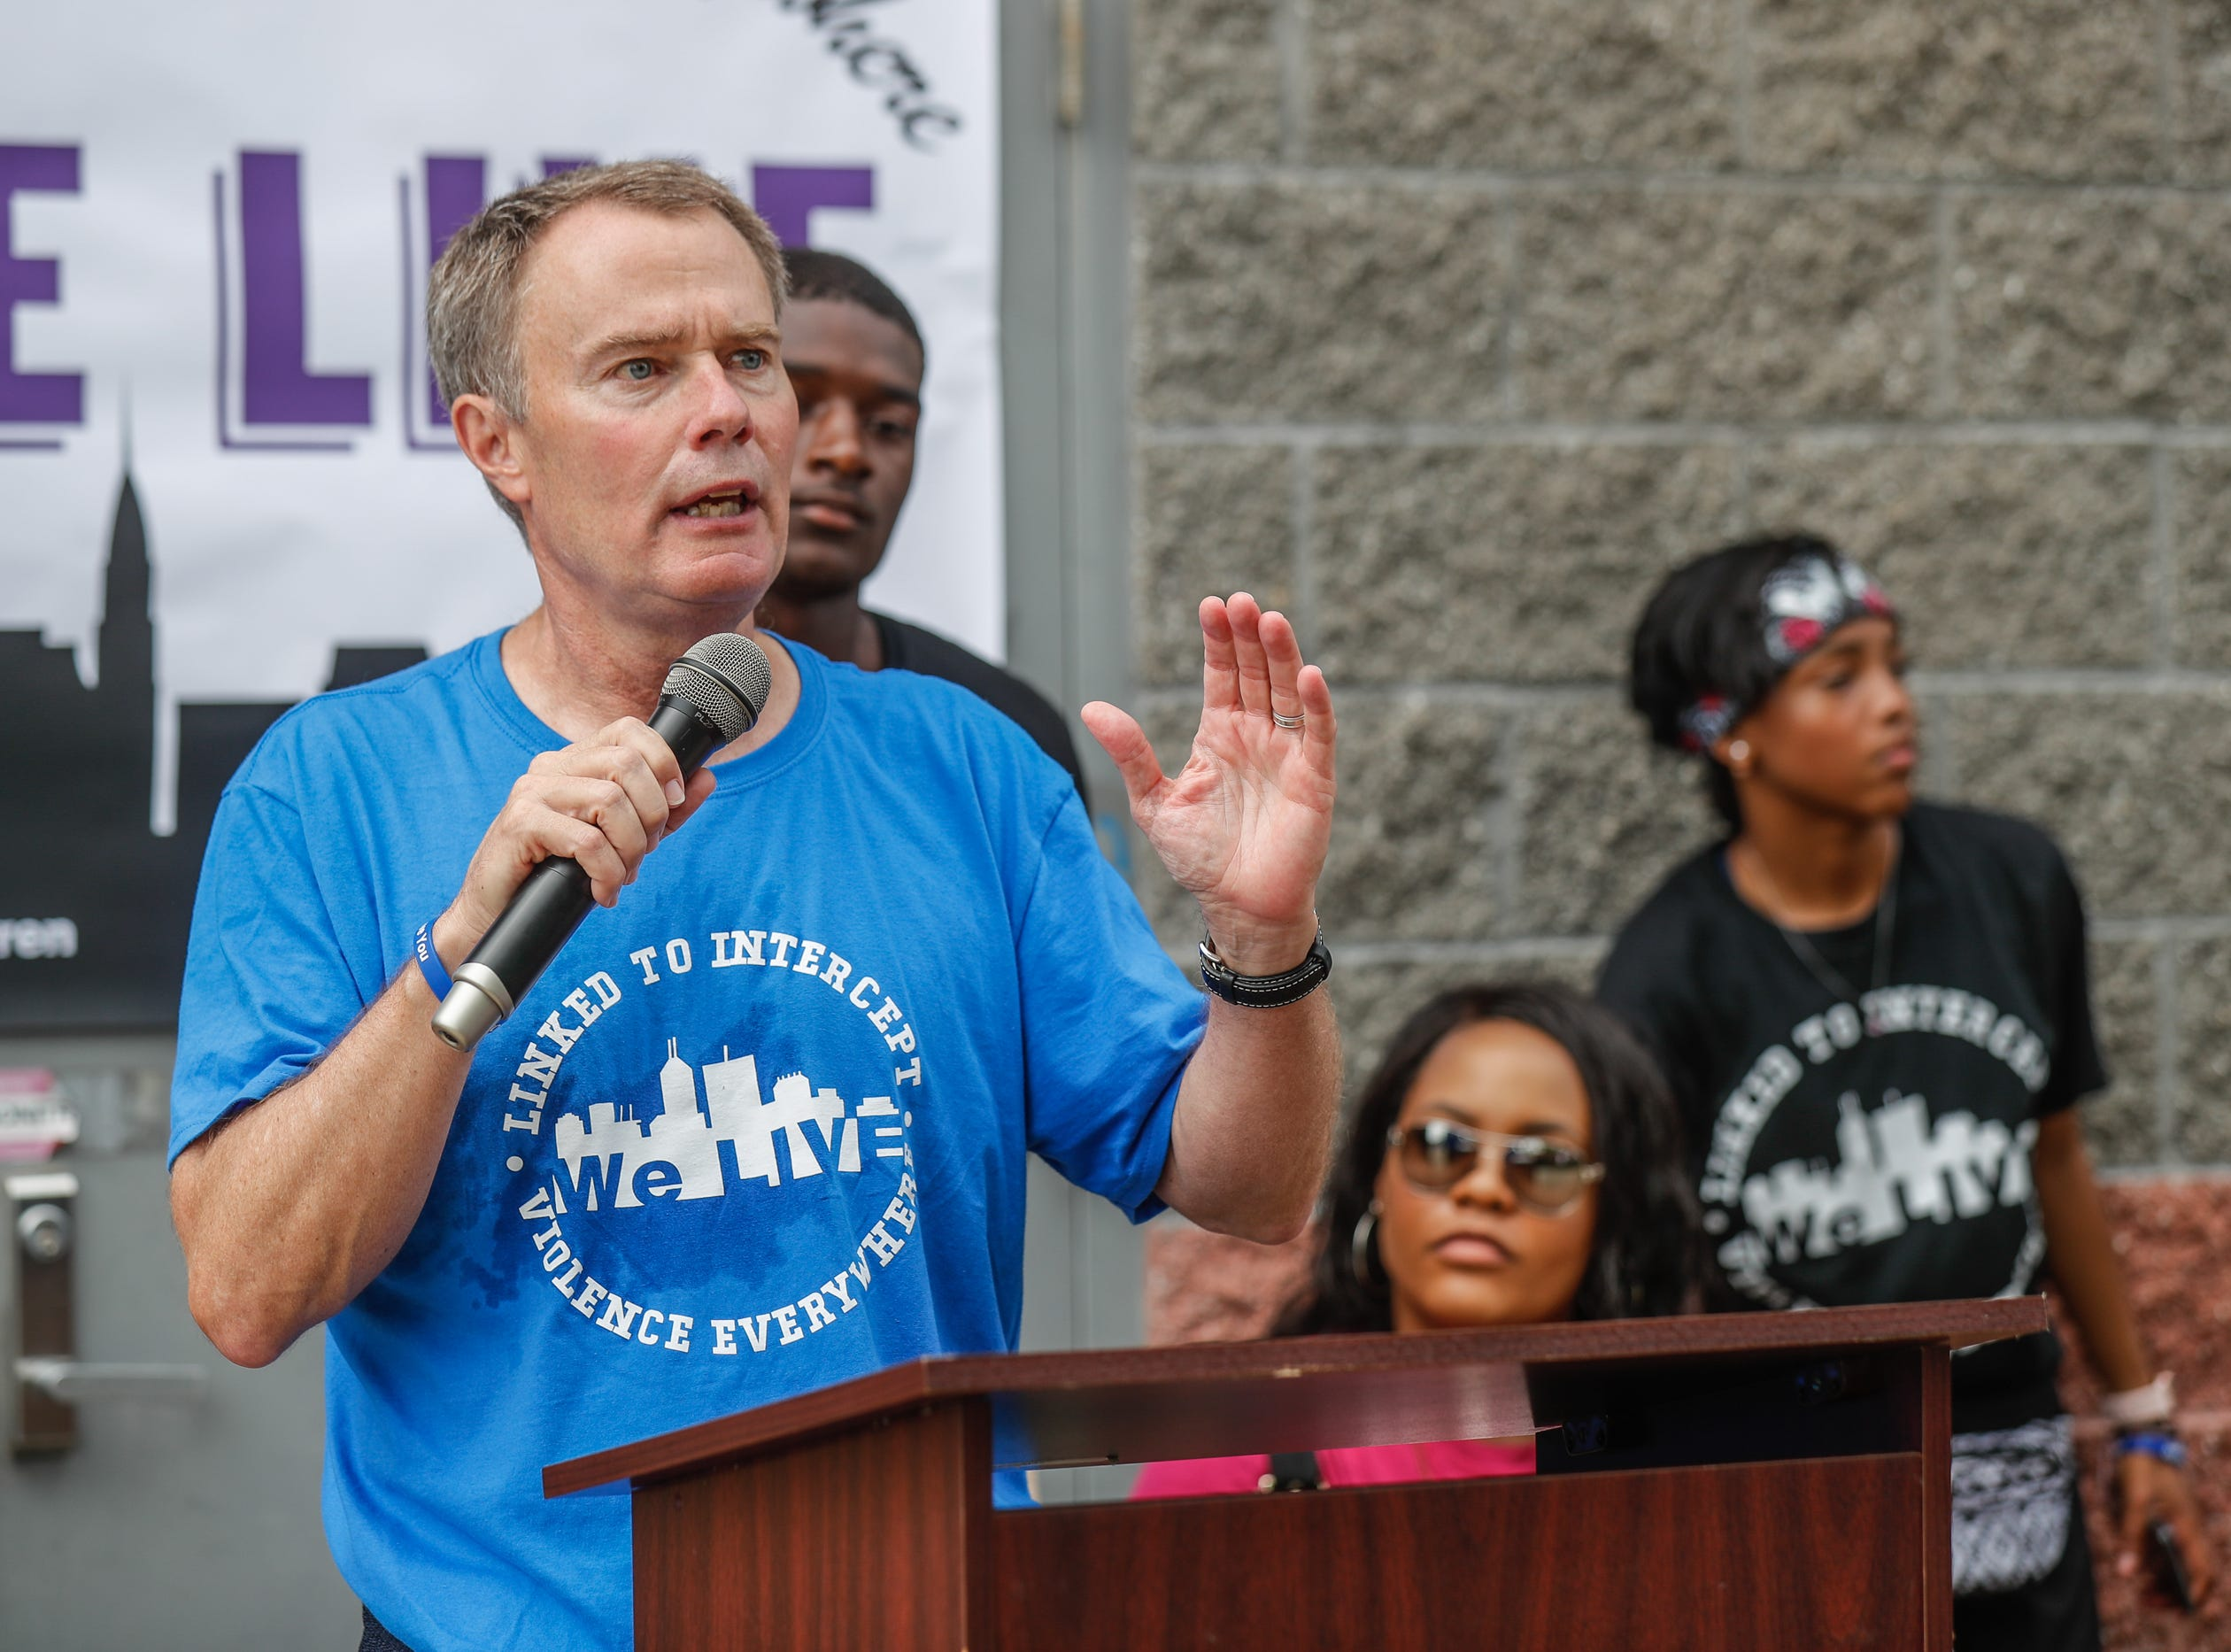 Indianapolis Mayor Joe Hogsett speaks during the second annual 'We Live' Peace Walk and Community Day to end youth violence at Washington Park on Saturday, Aug. 11, 2018. 'We Live,' which stands for 'Linked To Intercept Violence' was started by students from Warren Central High School in Indianapolis.